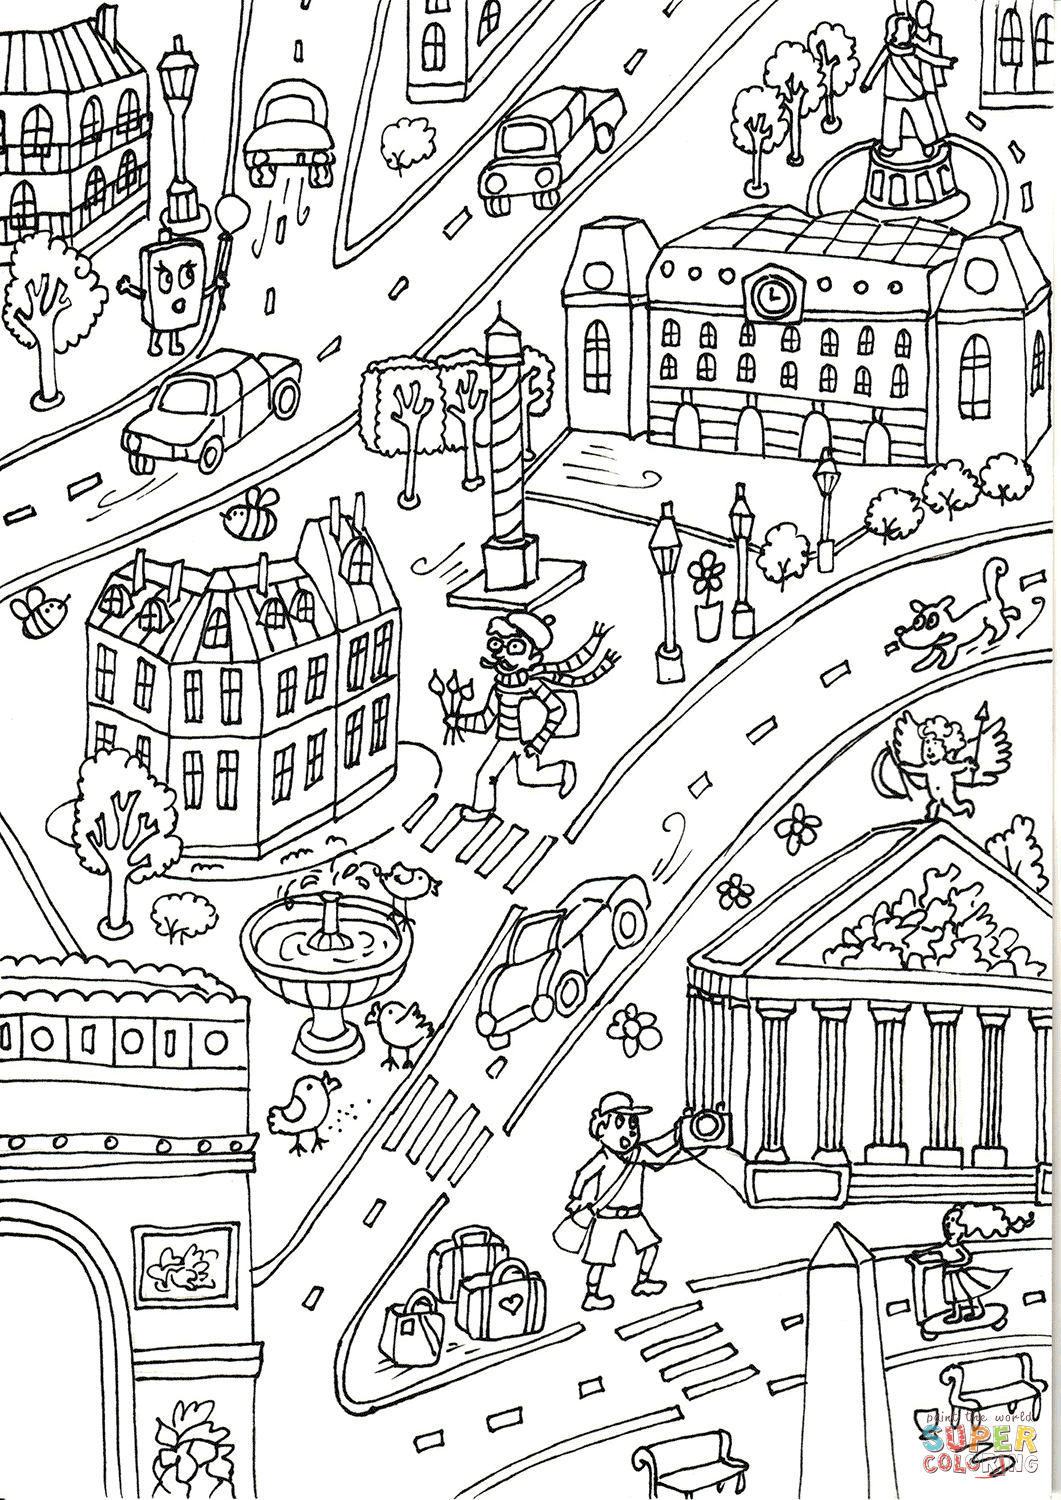 The Arc De Triomphe And Madeleine Church Coloring Page